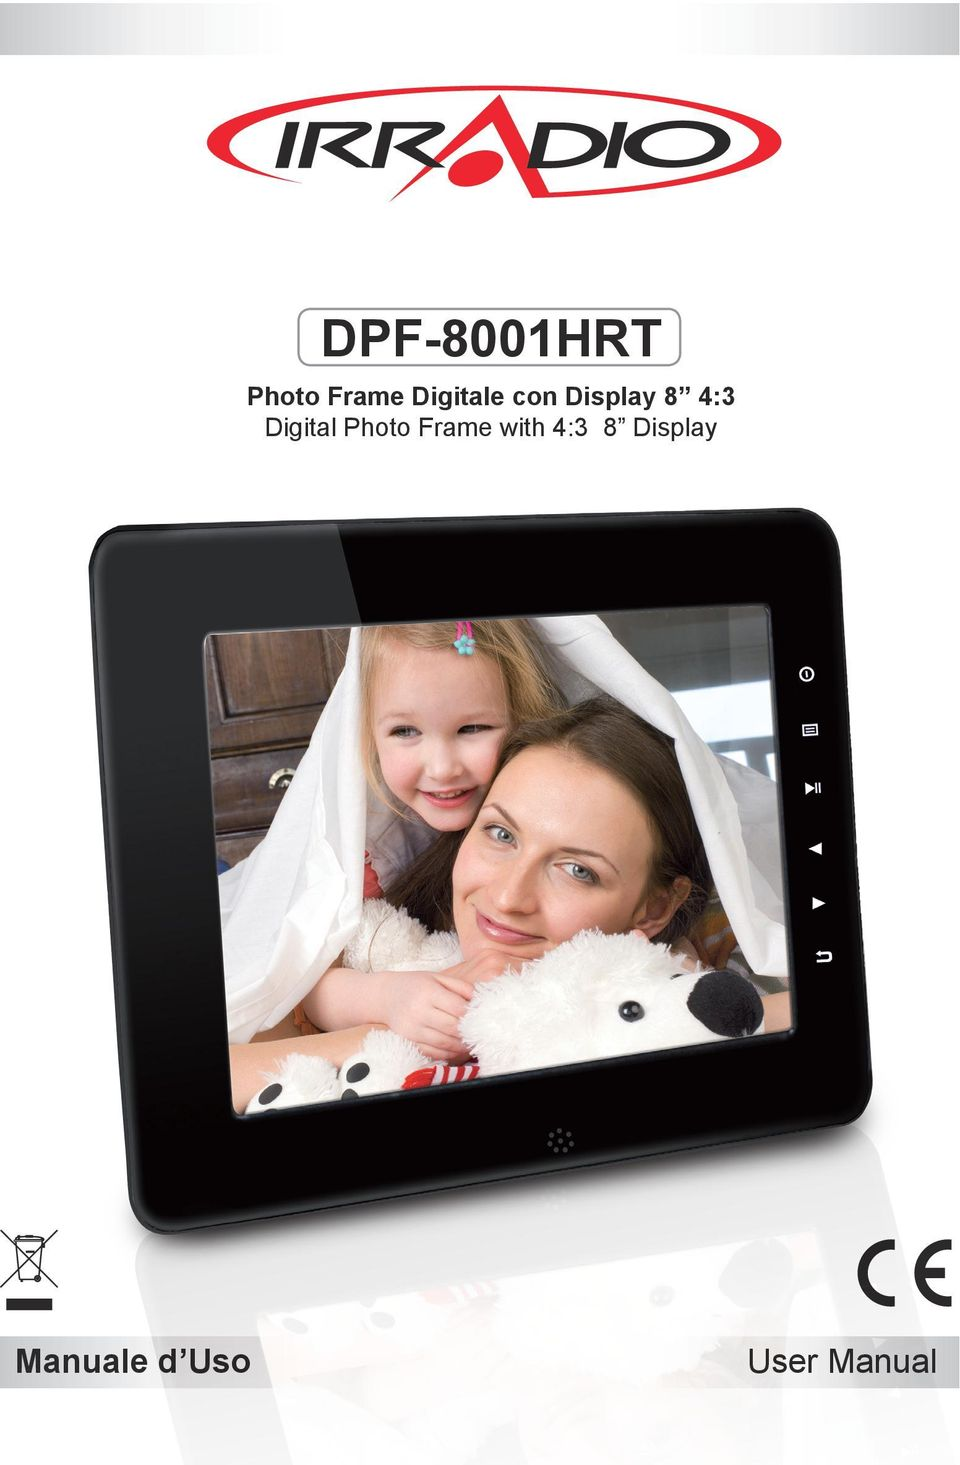 Digital Photo Frame with 4:3